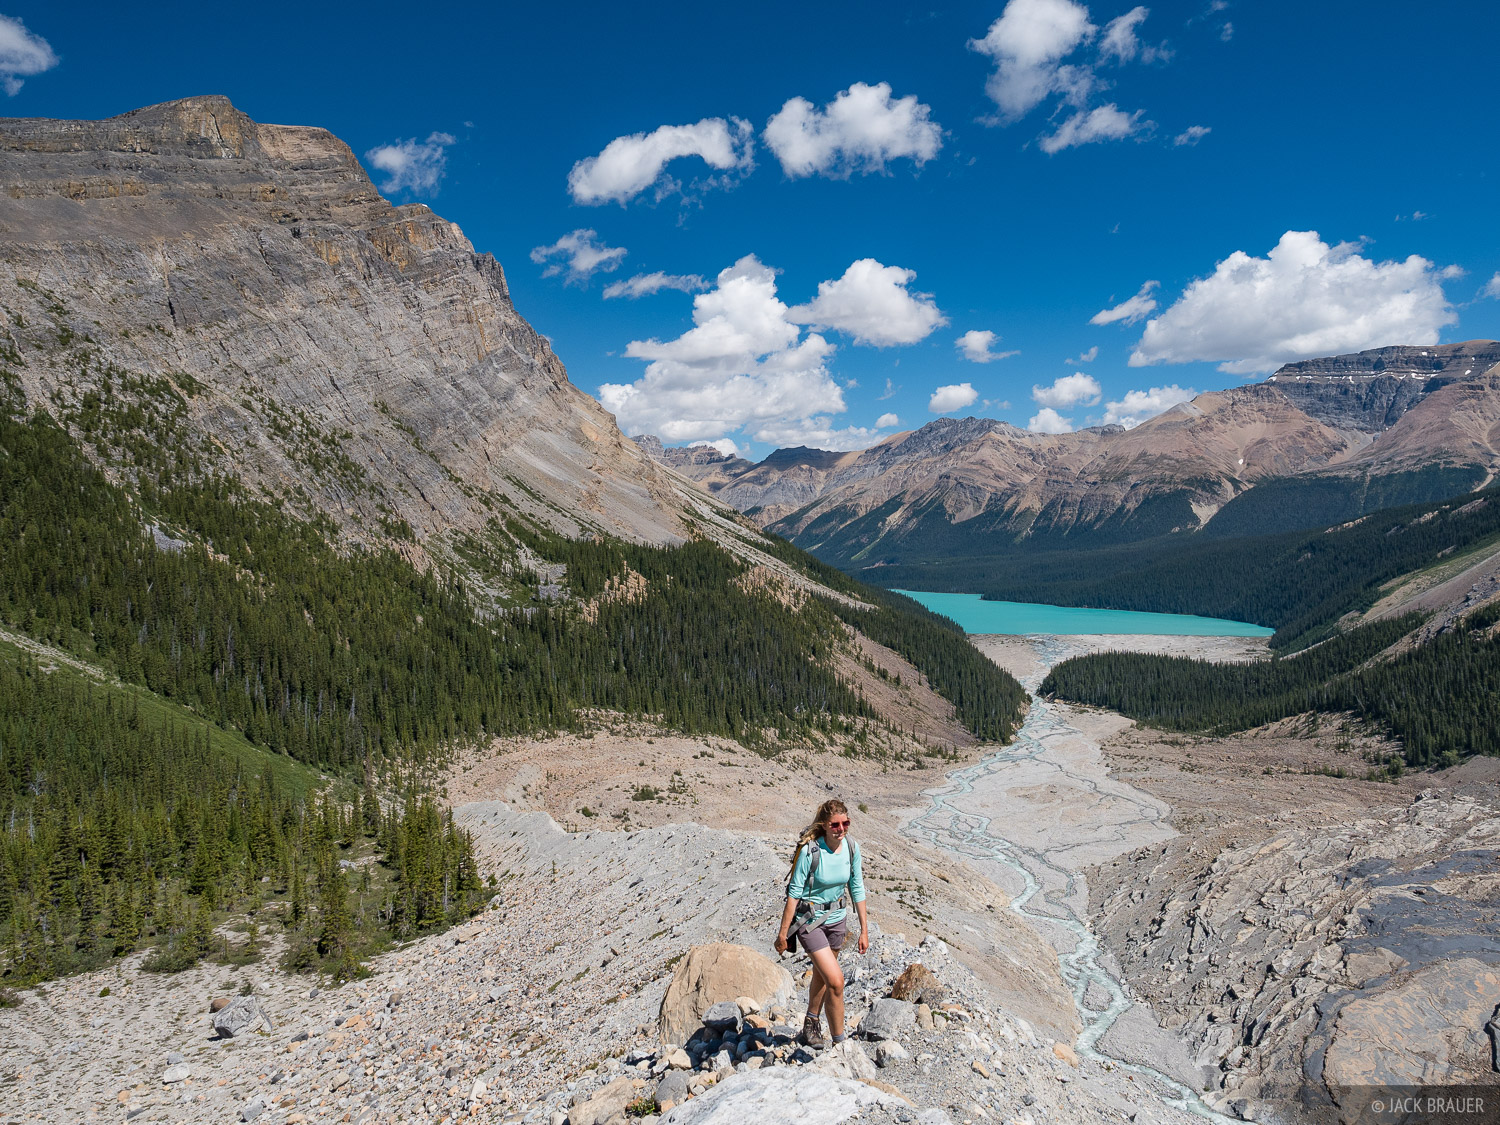 Alberta, Banff National Park, Canada, Canadian Rockies, Peyto Lake, hiking, photo